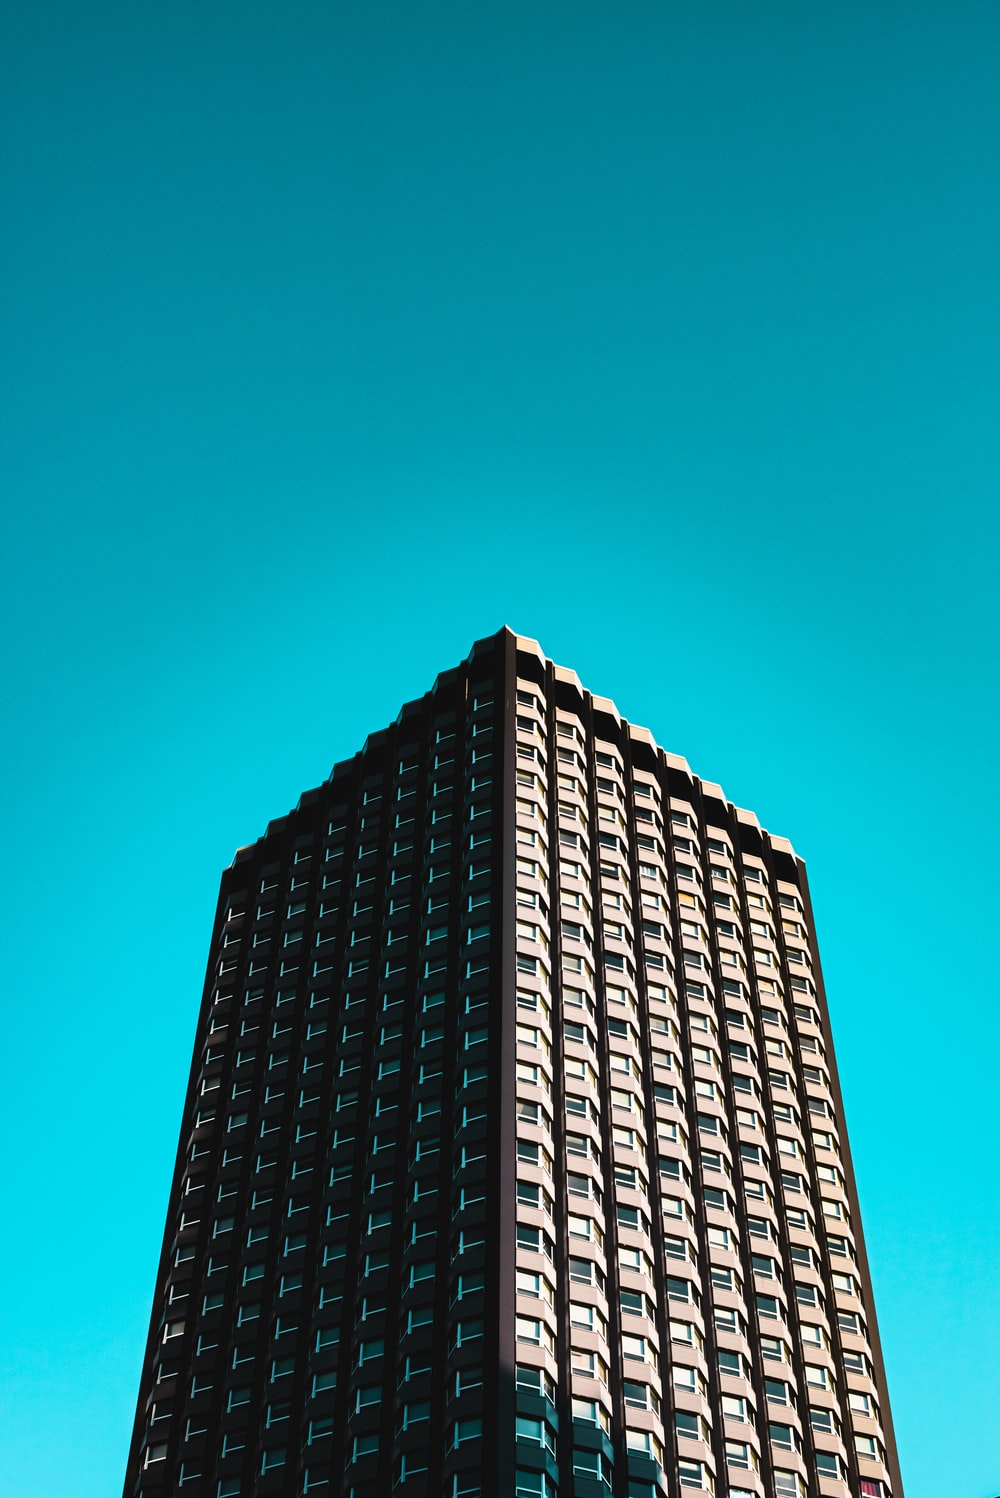 black and gray concrete building under blue sky during daytime